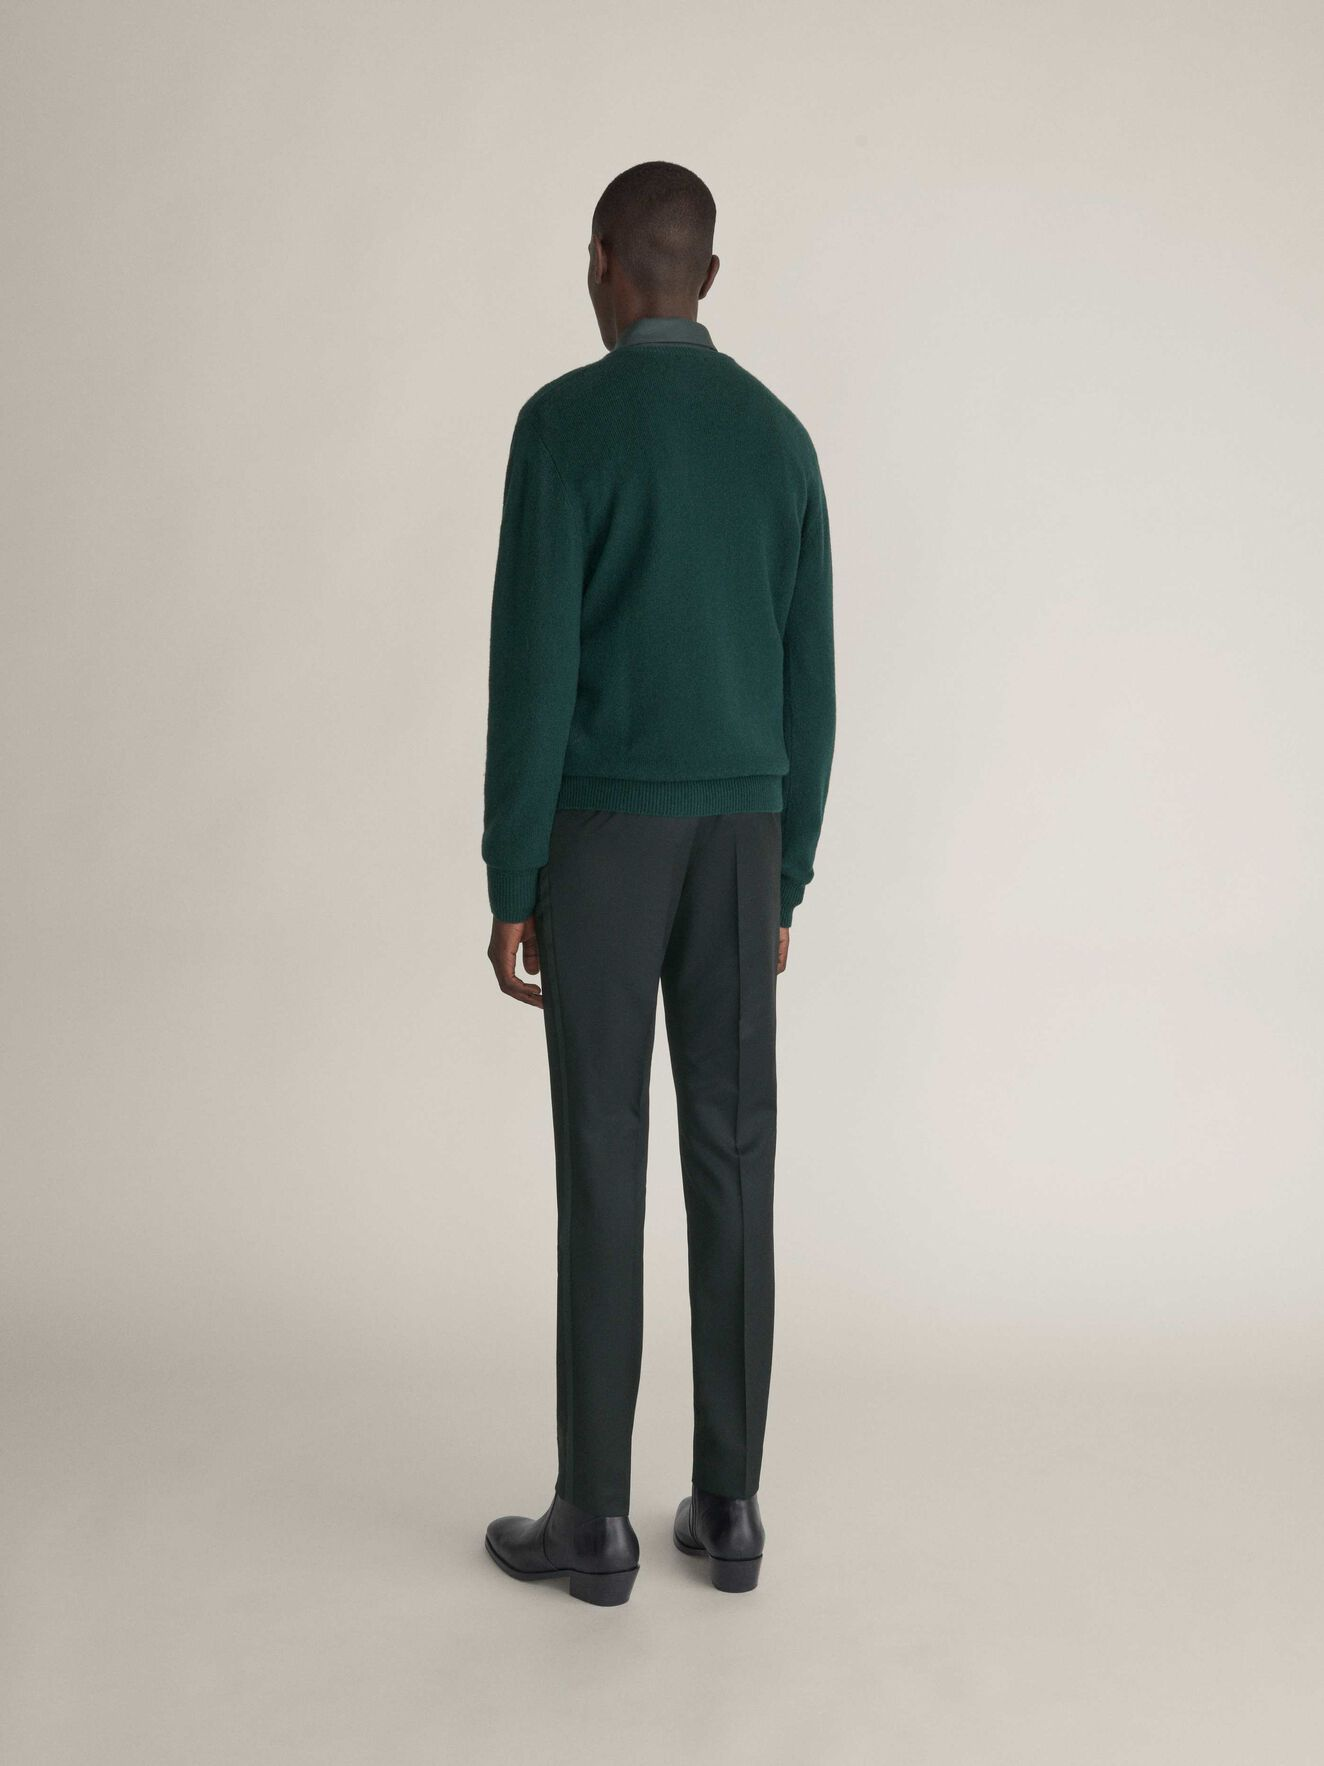 Nickol Pullover in Seaweed Green from Tiger of Sweden